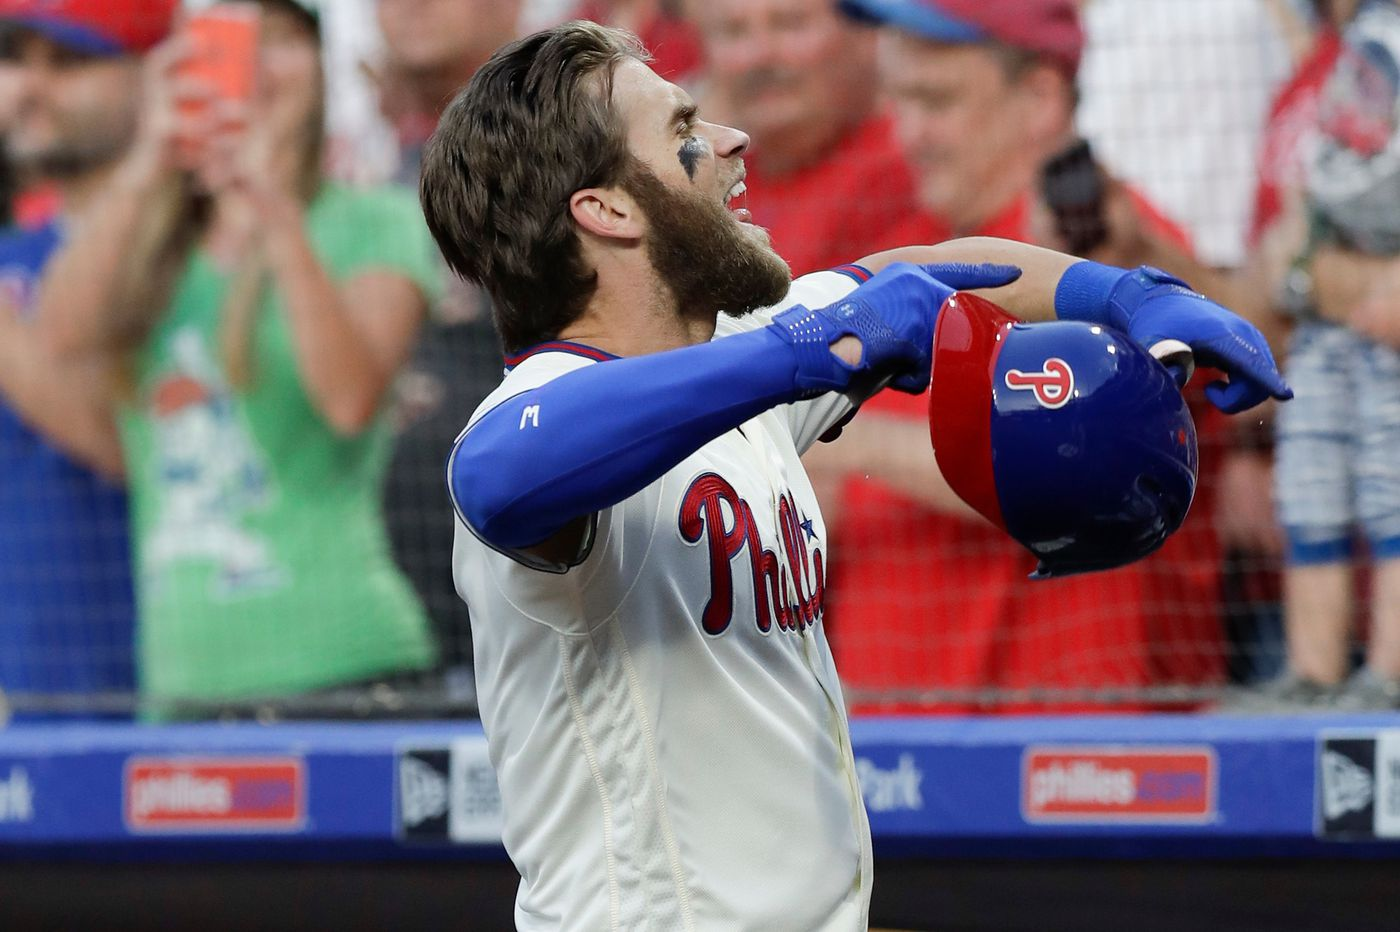 Bryce Harper crushes his first home run for the Phillies